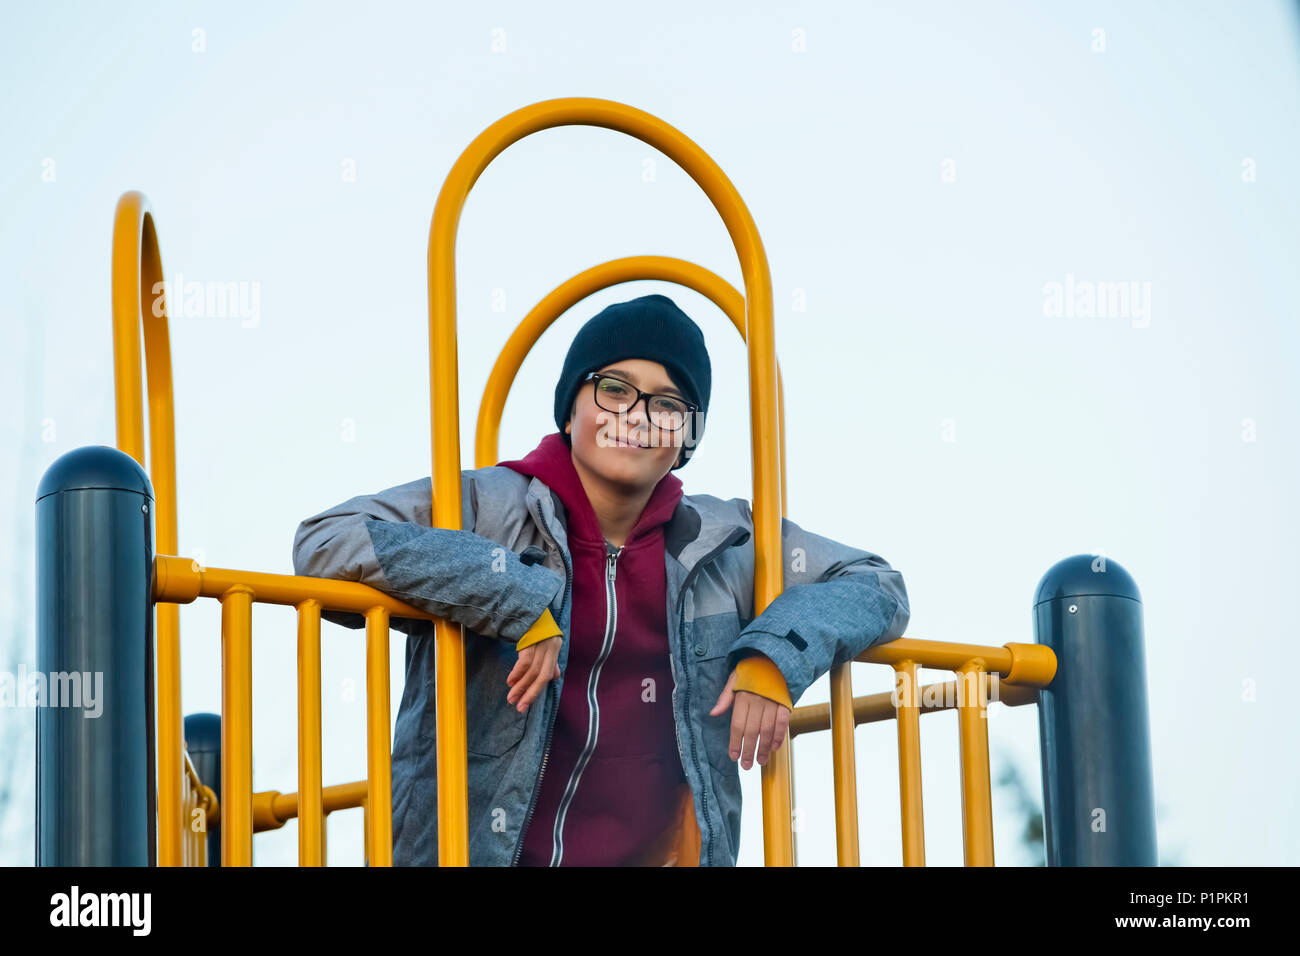 Portrait of a young boy playing on playground equipment; Langley, British Columbia, Canada - Stock Image